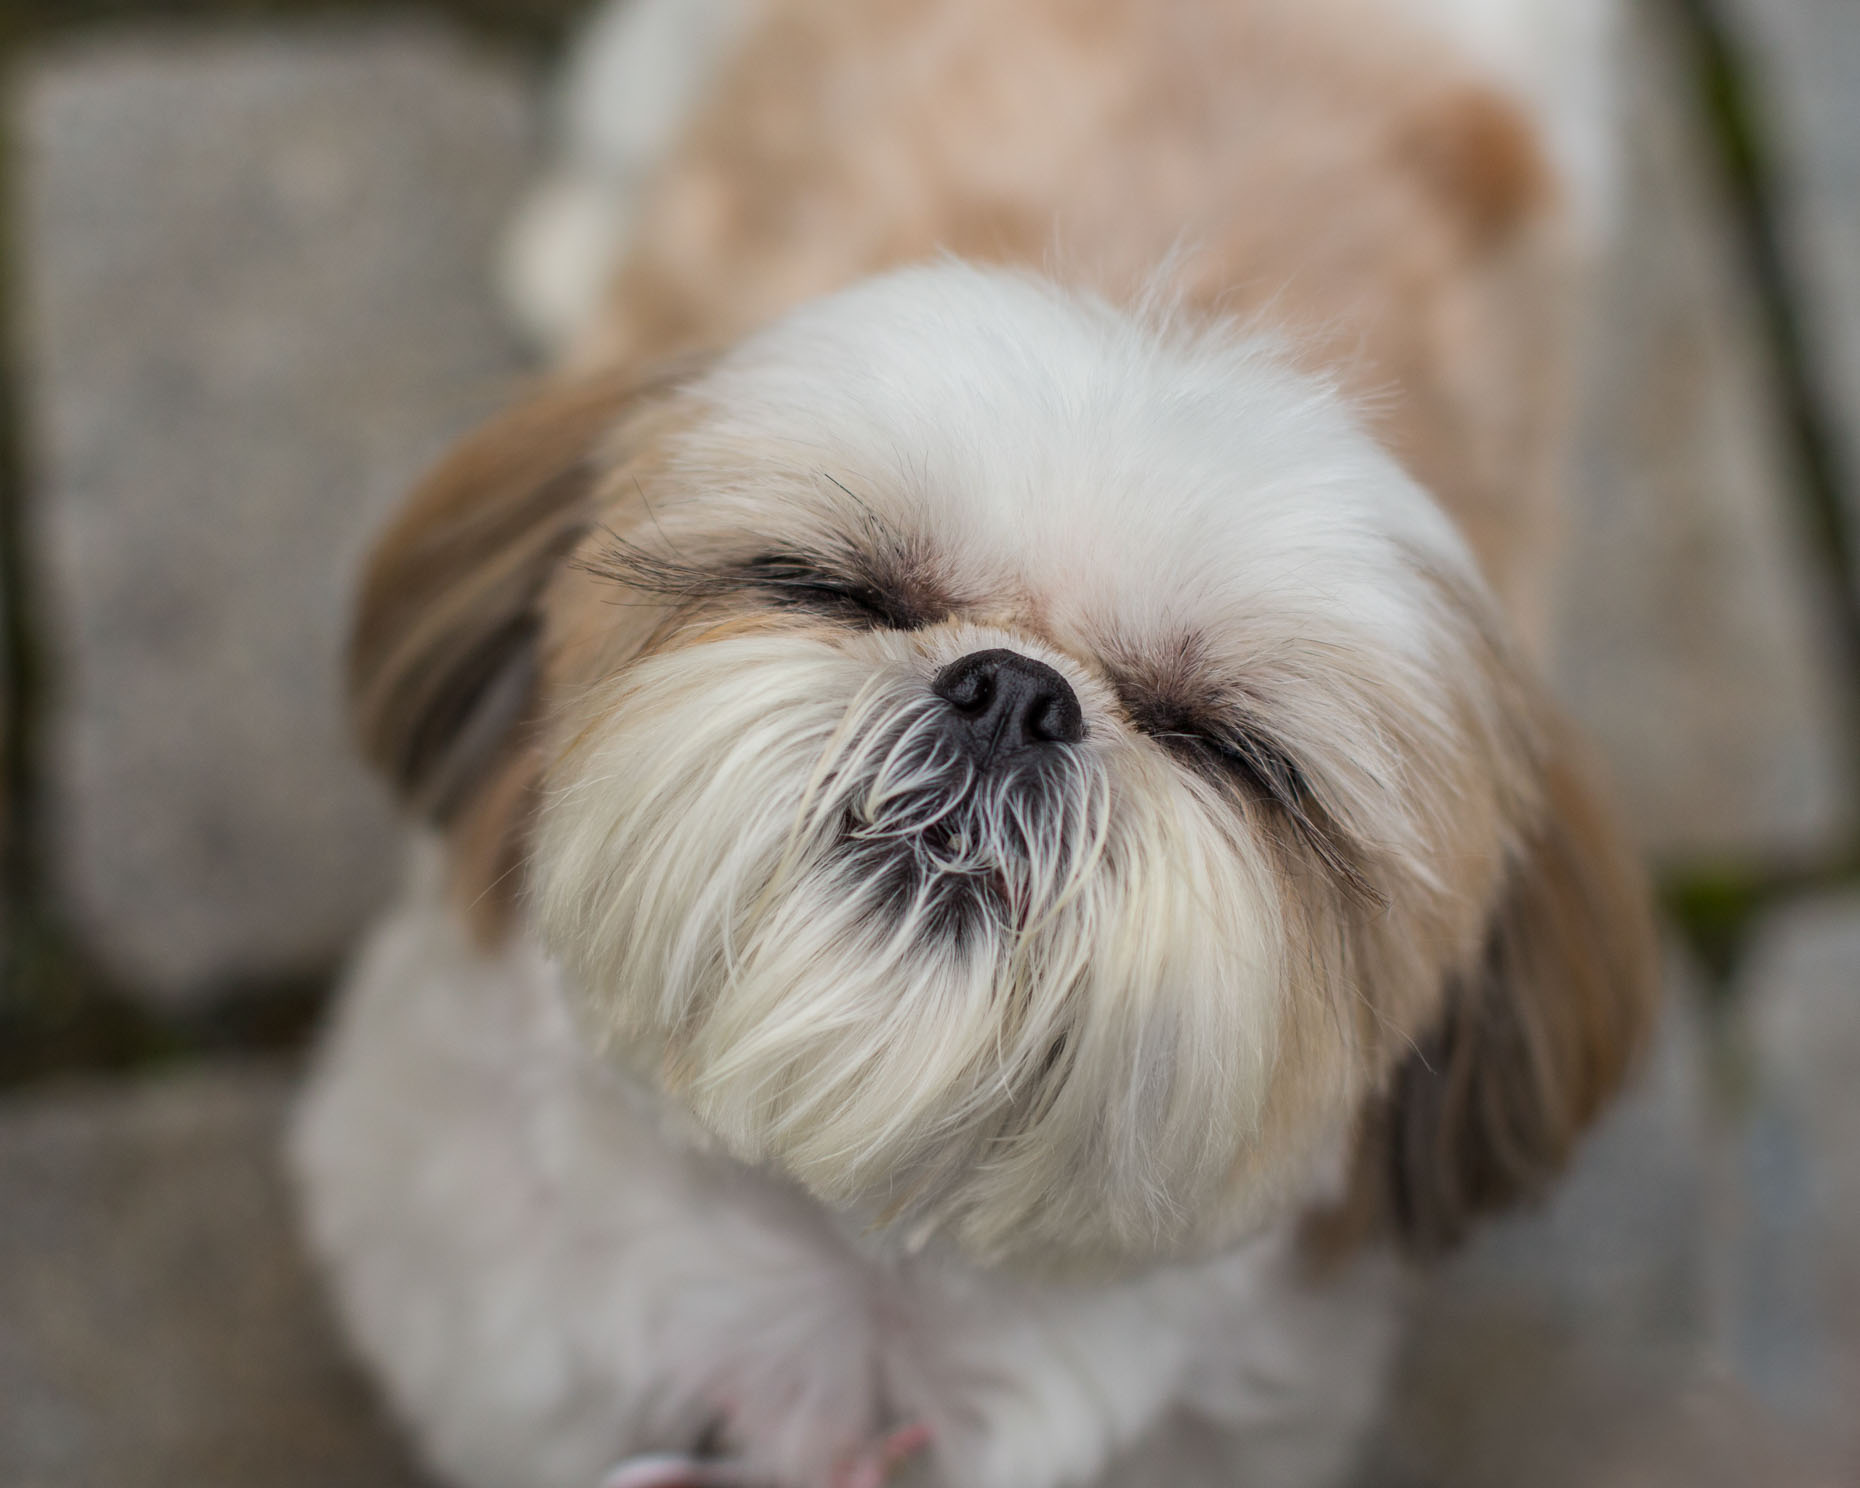 Pet Photography  |  Lhasa Apso Close-Up by Mark Rogers